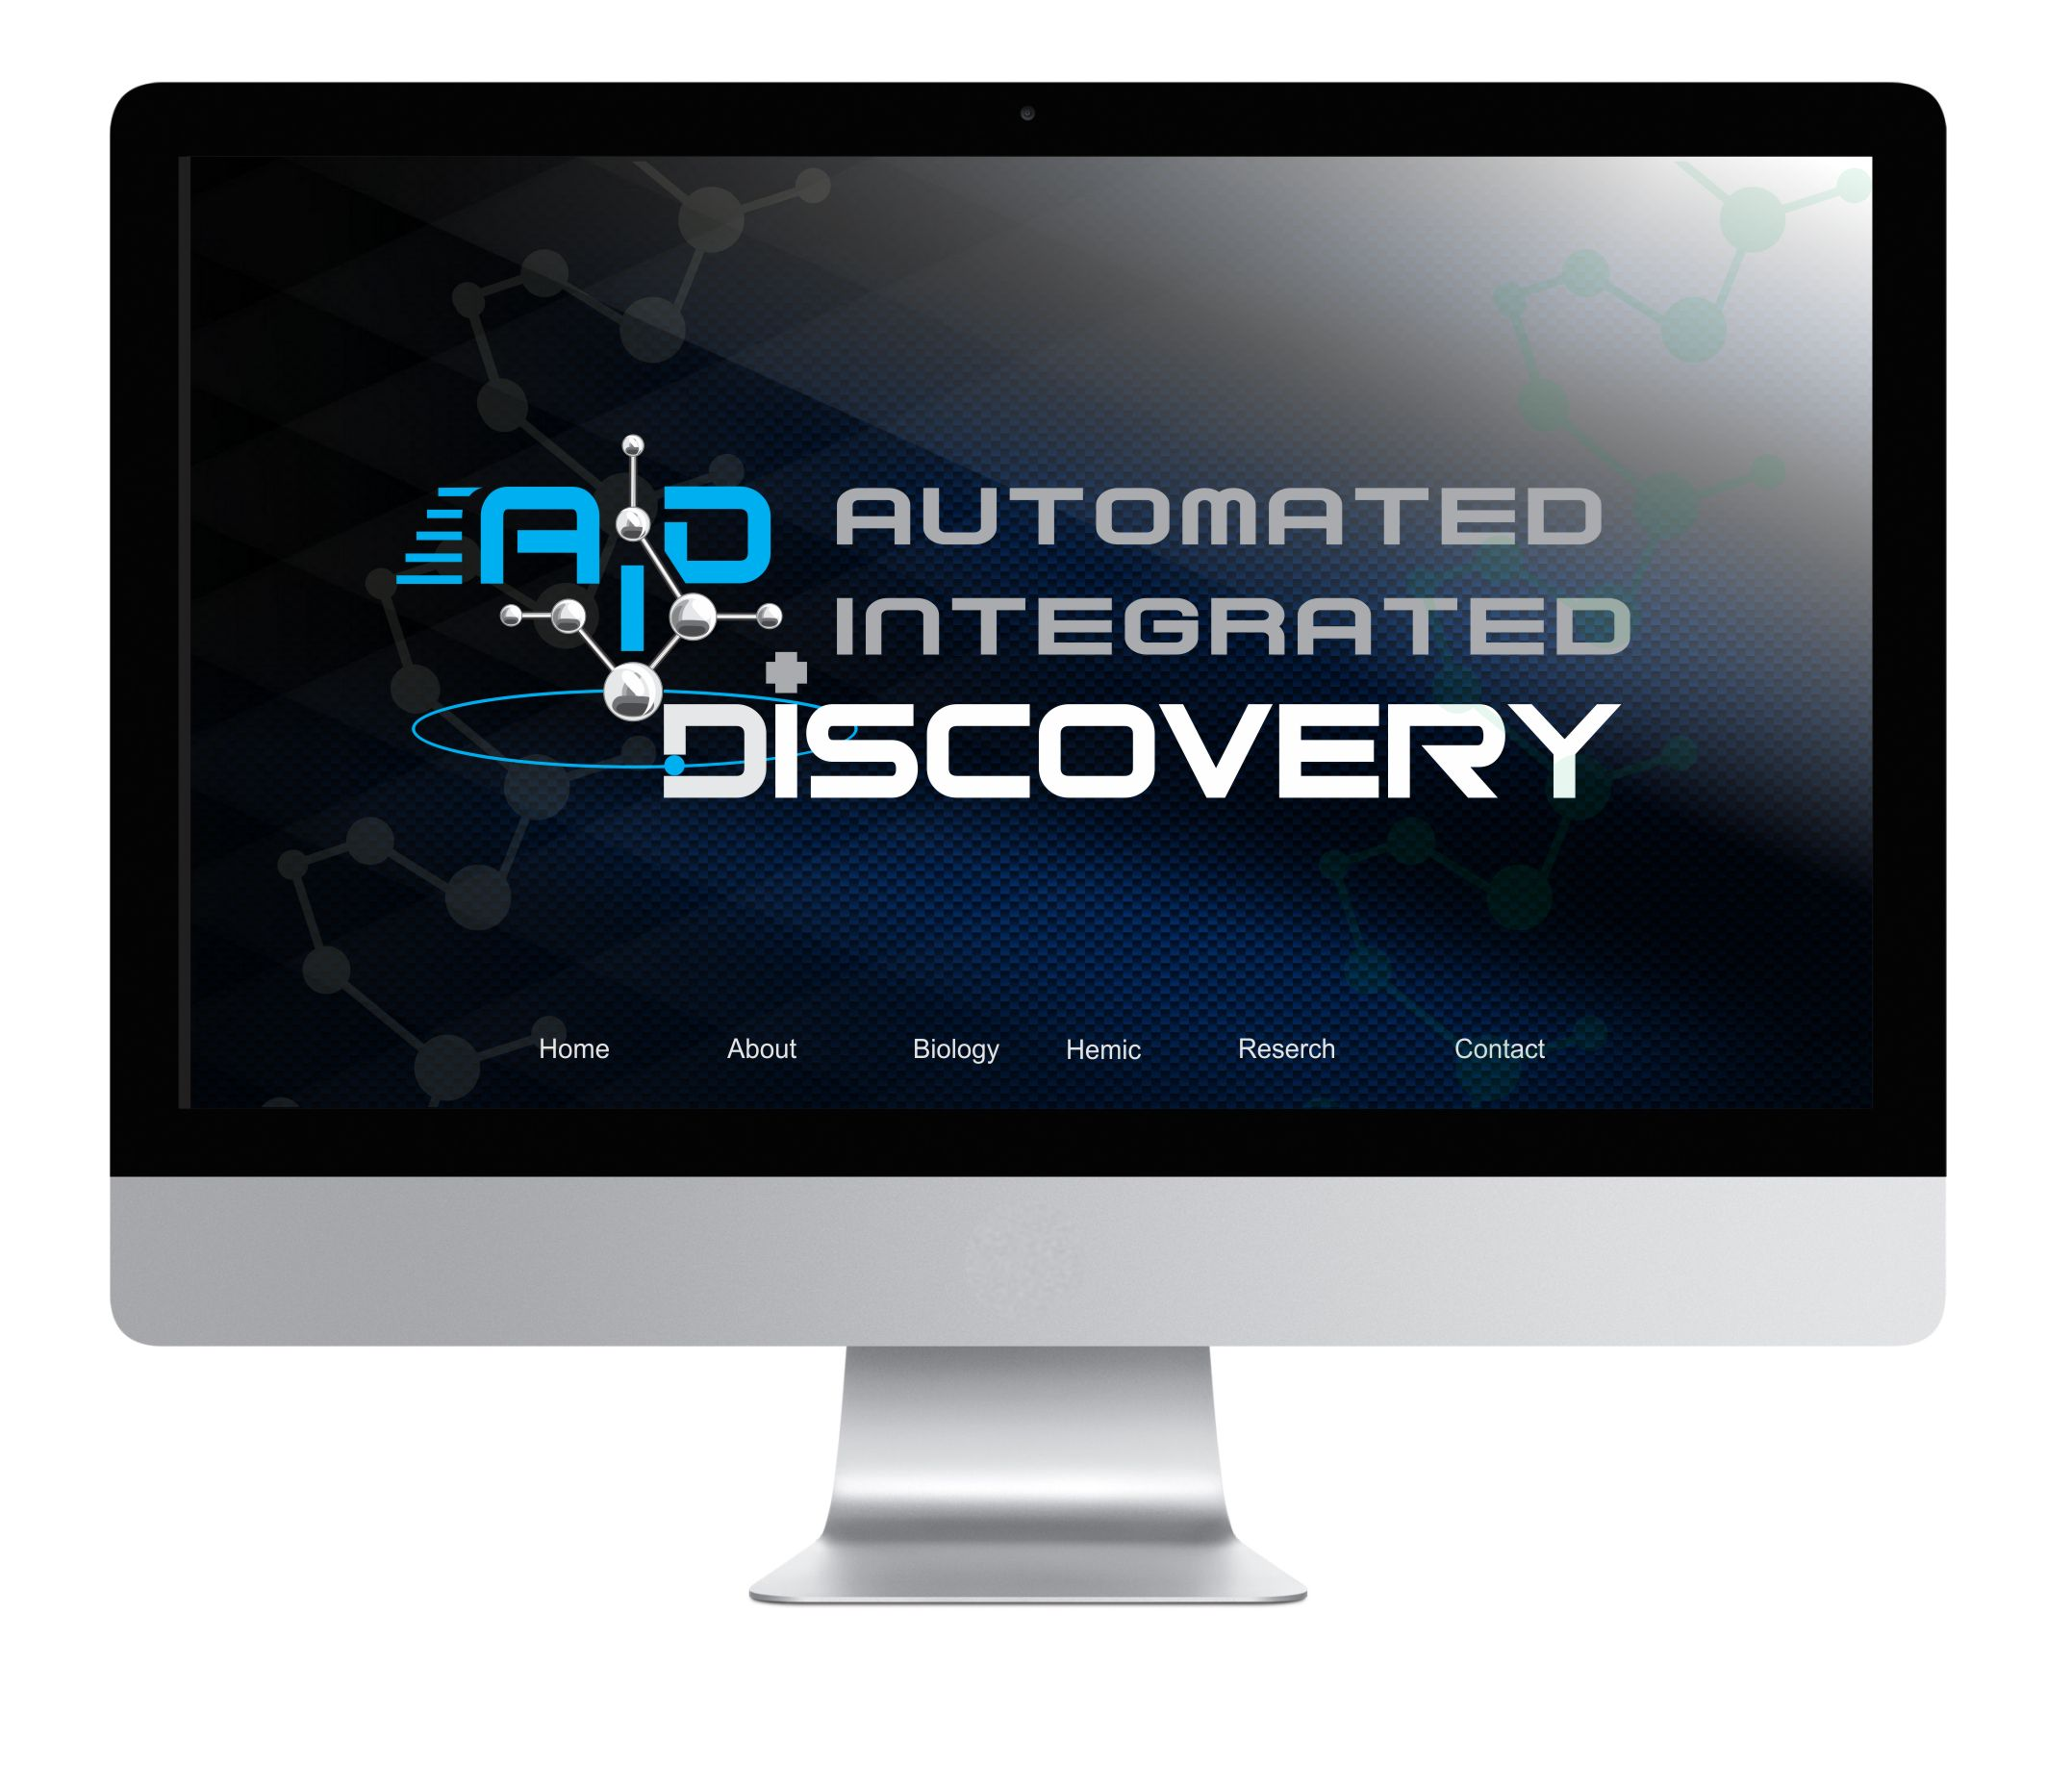 Logo Design by Nikola Kapunac - Entry No. 76 in the Logo Design Contest Automated Integrated Discovery  Logo Design.